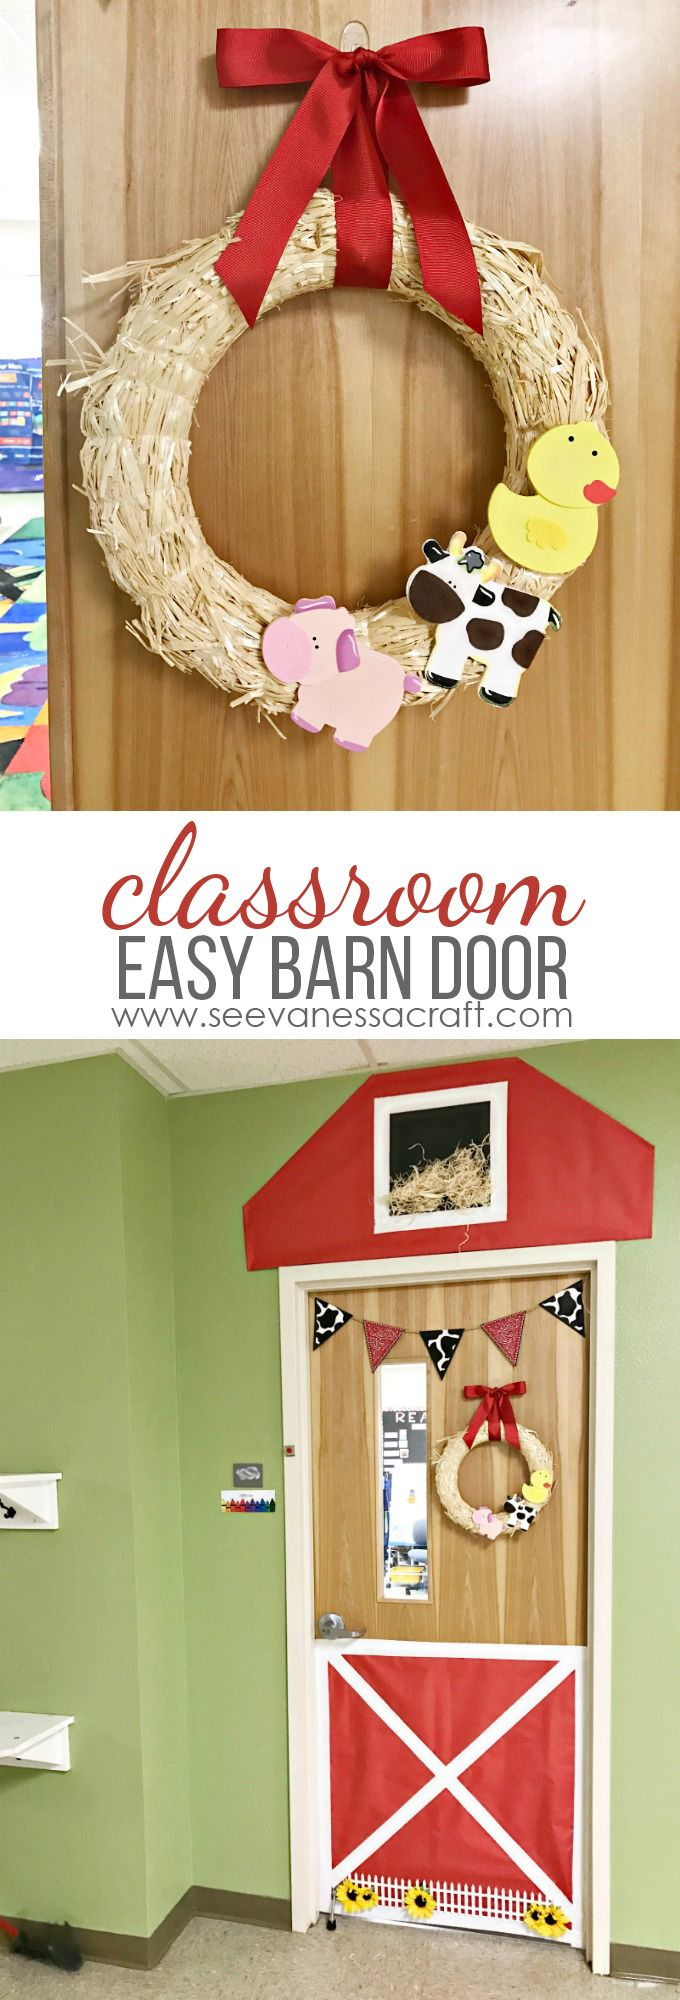 Easy Classroom Barn Door and Farm Animal Wreath - perfect for a kindergarten farm unit or barnyard party!